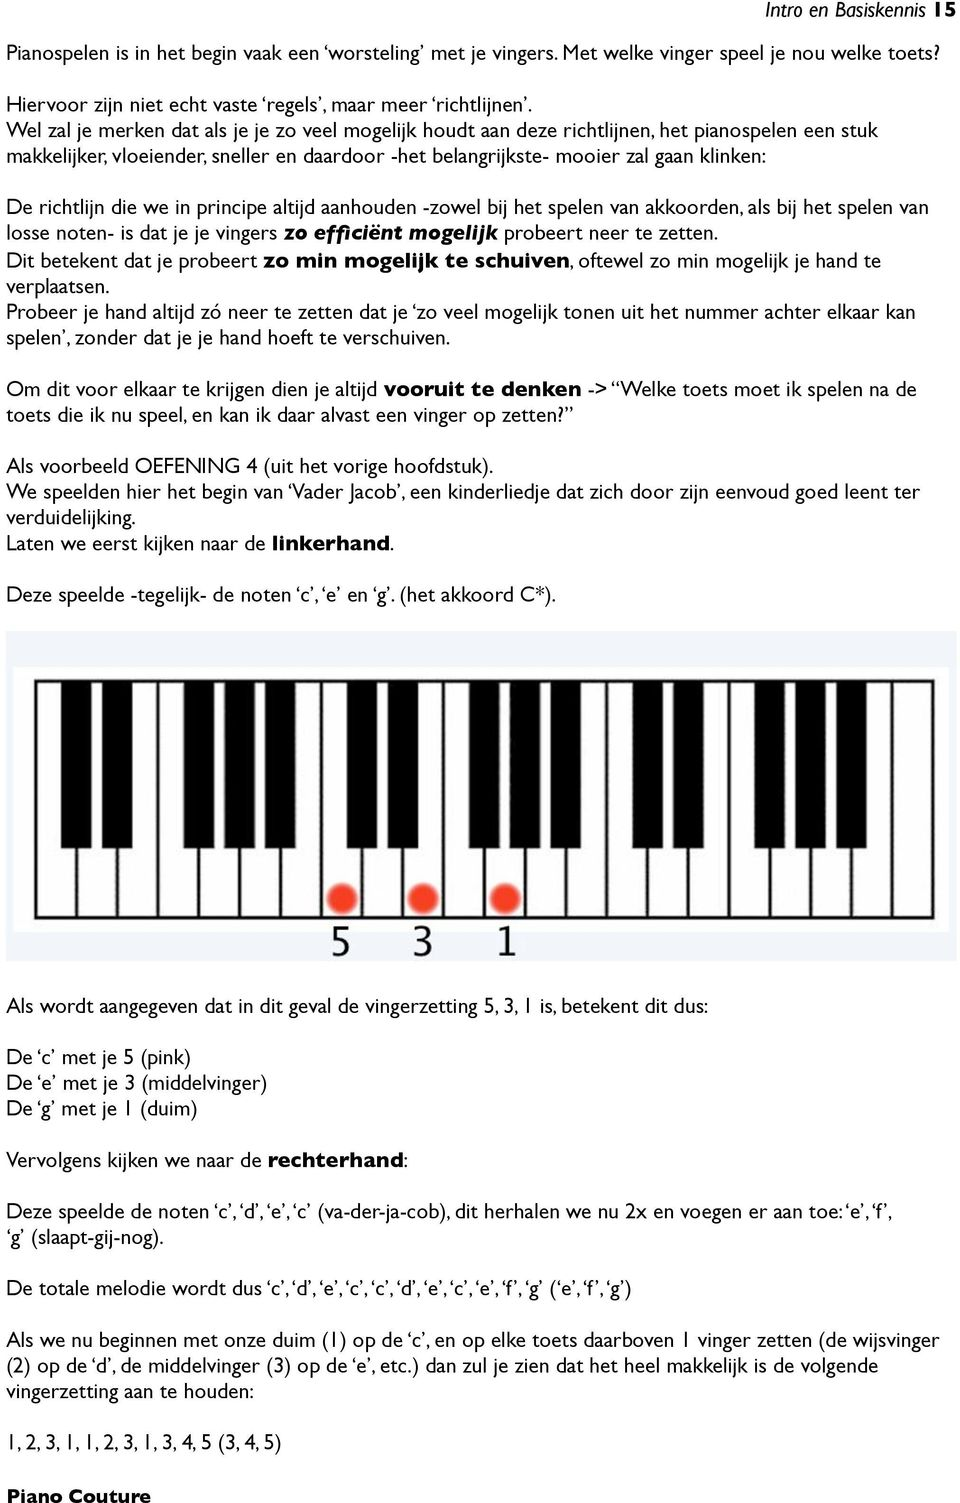 Betere Piano Couture. Intro en Basiskennis - PDF Free Download JY-46